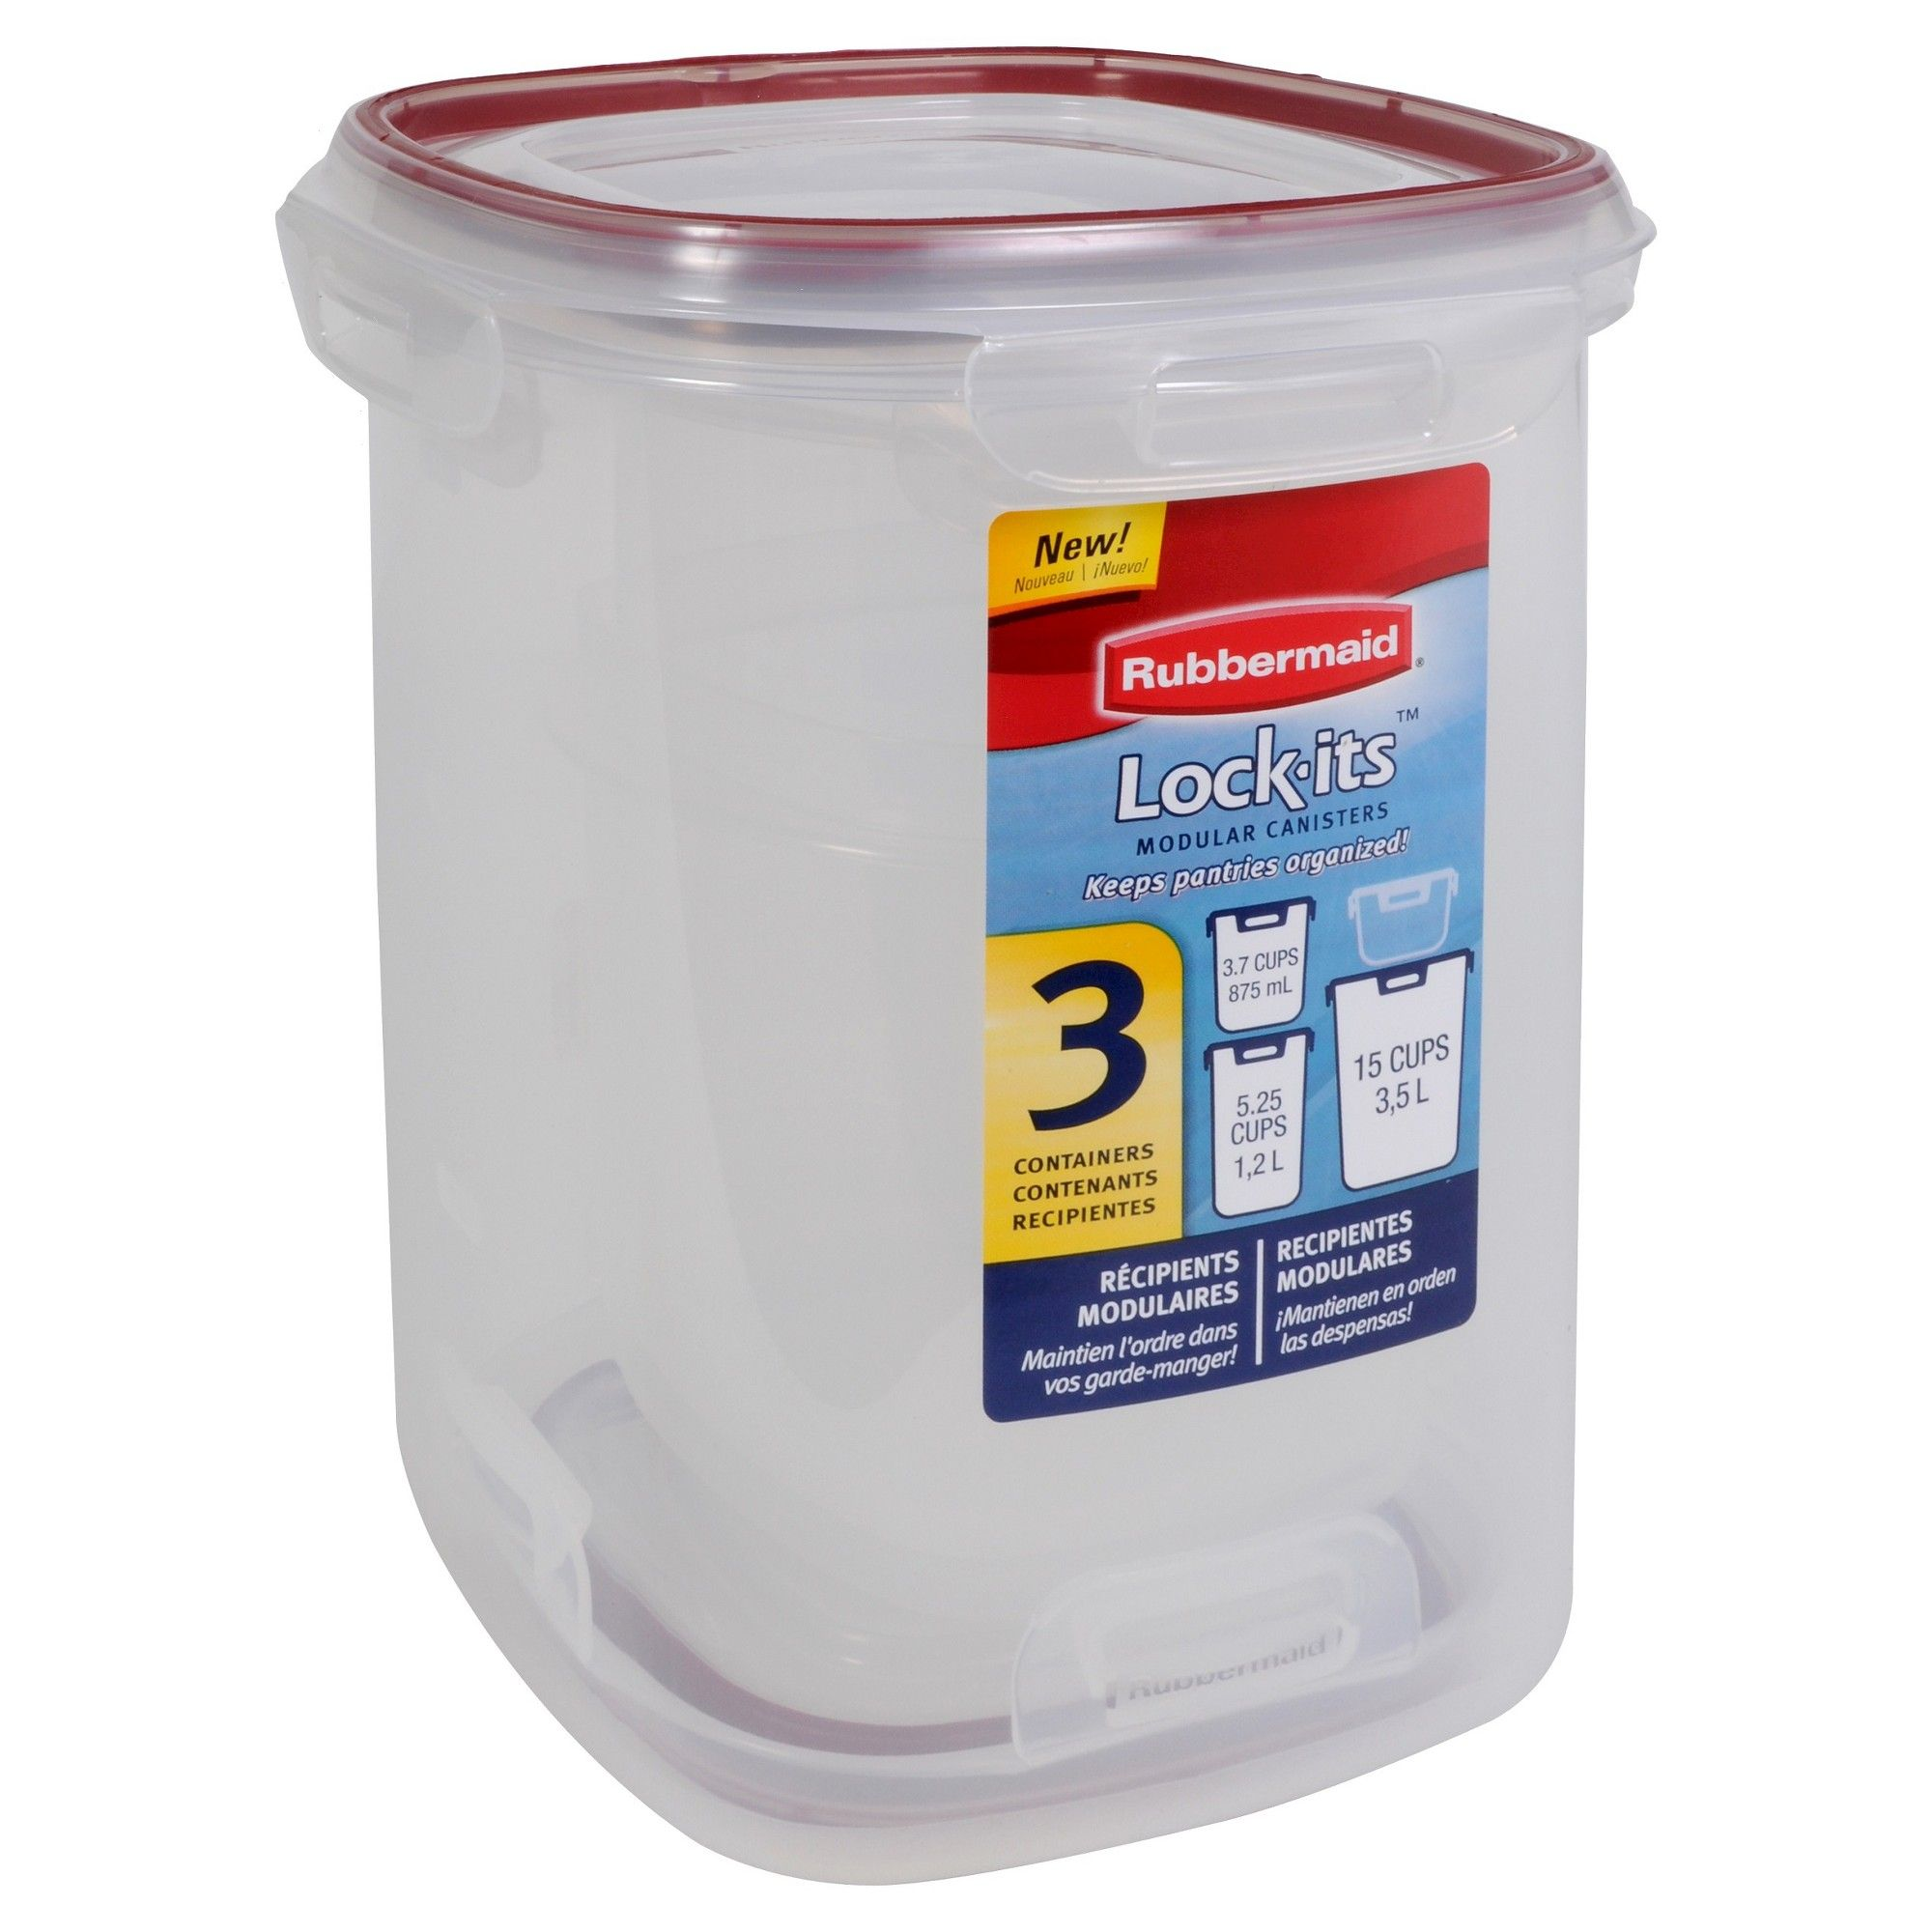 Rubbermaid Lock Its Food Storage Canister Set 3ct Clear Products